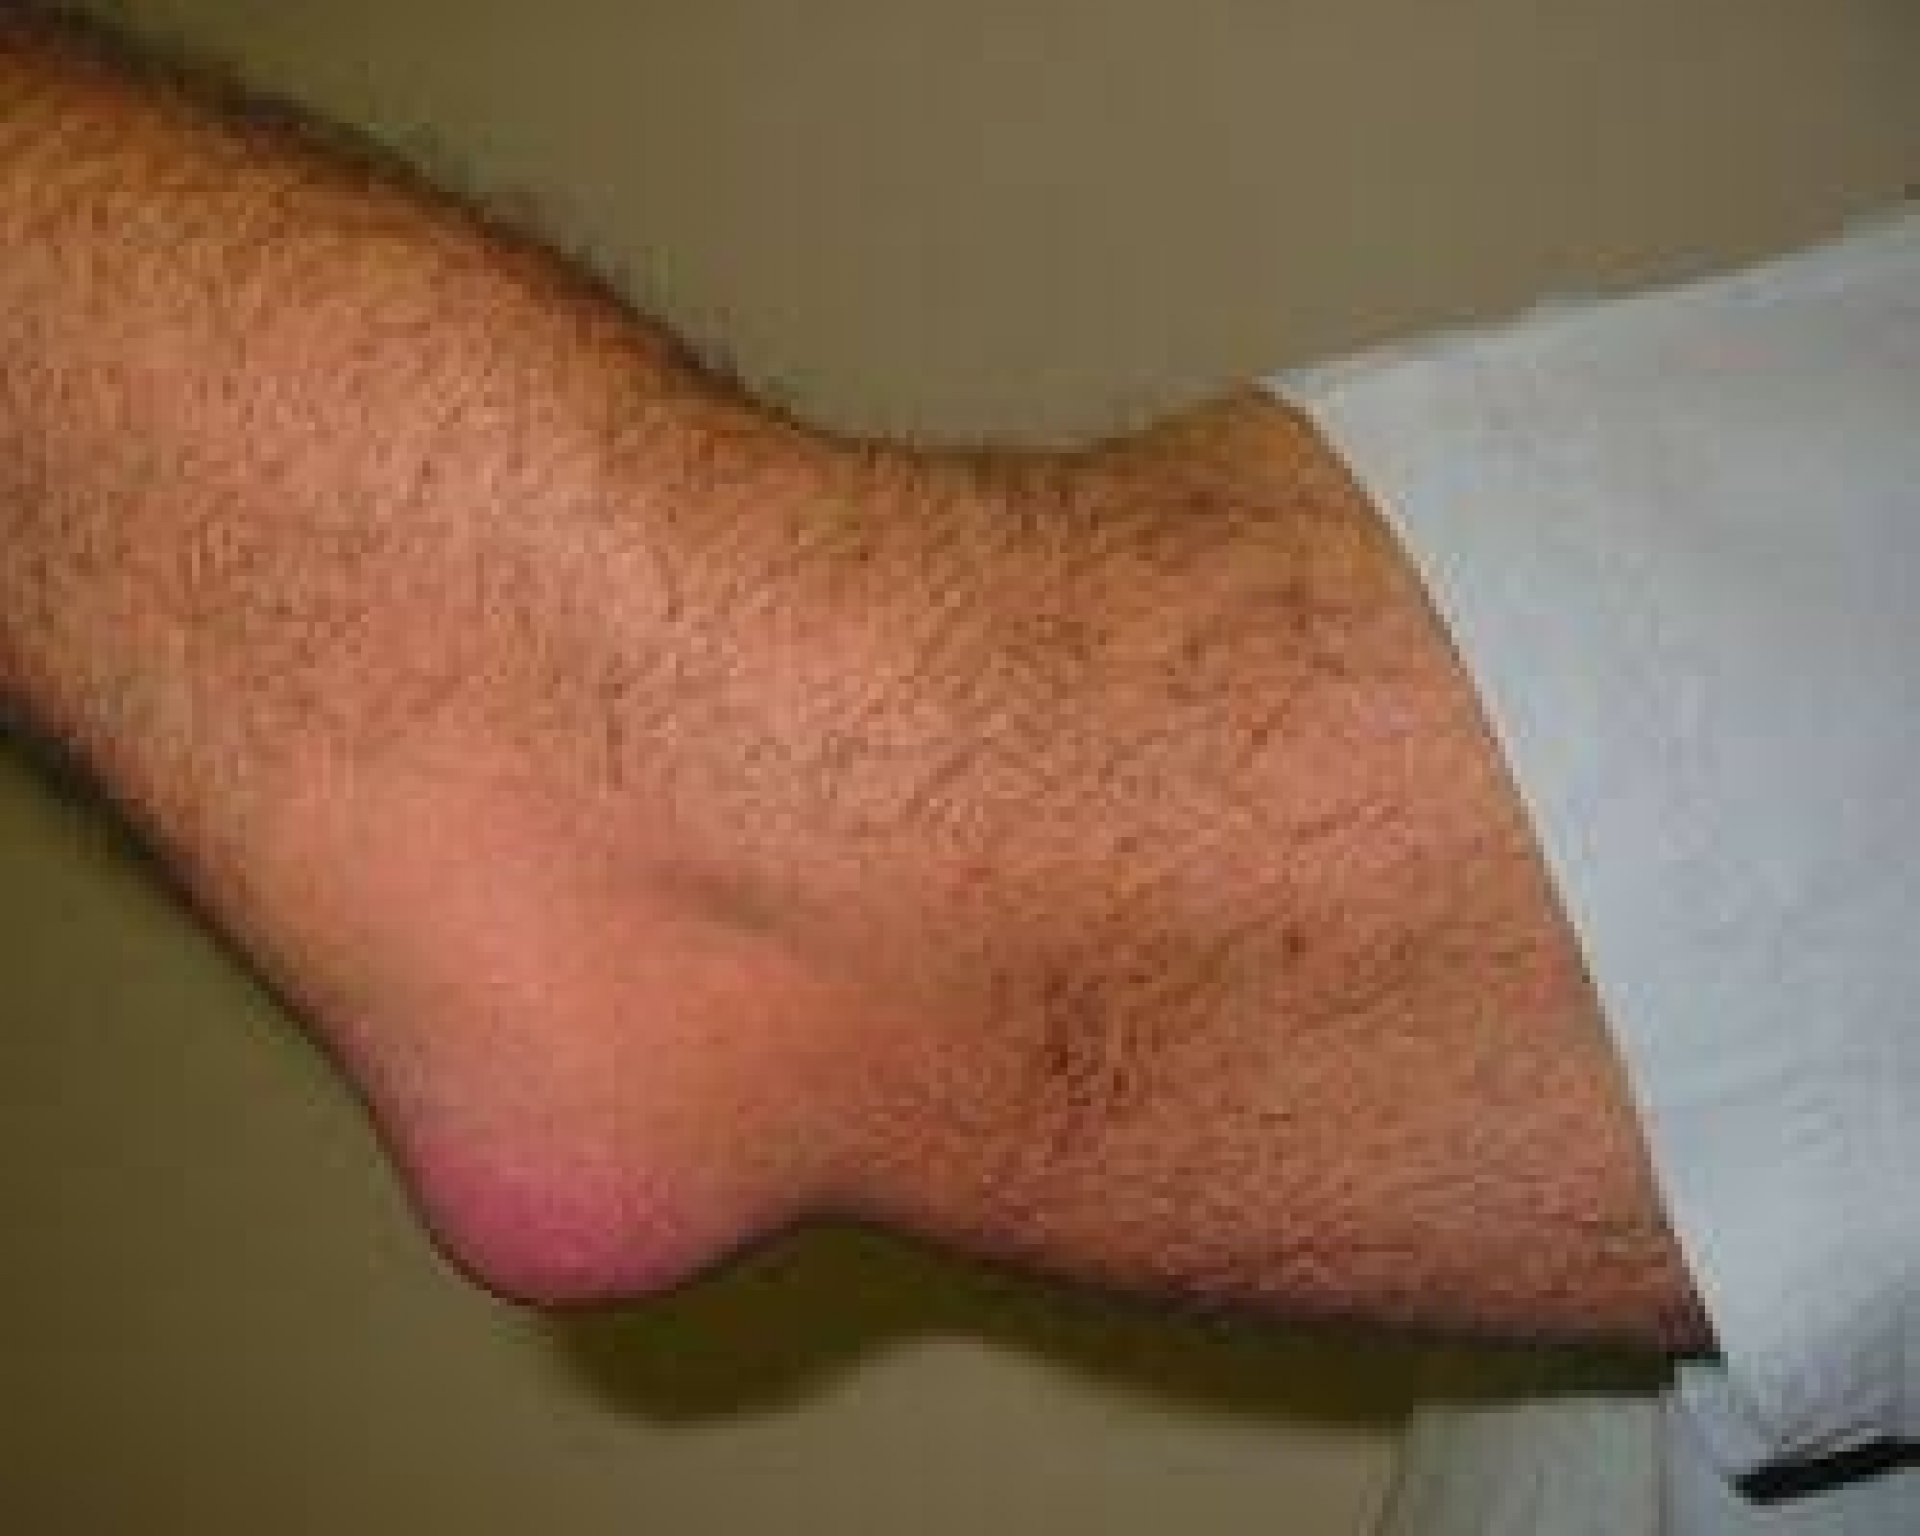 swelling in joints on right side of body